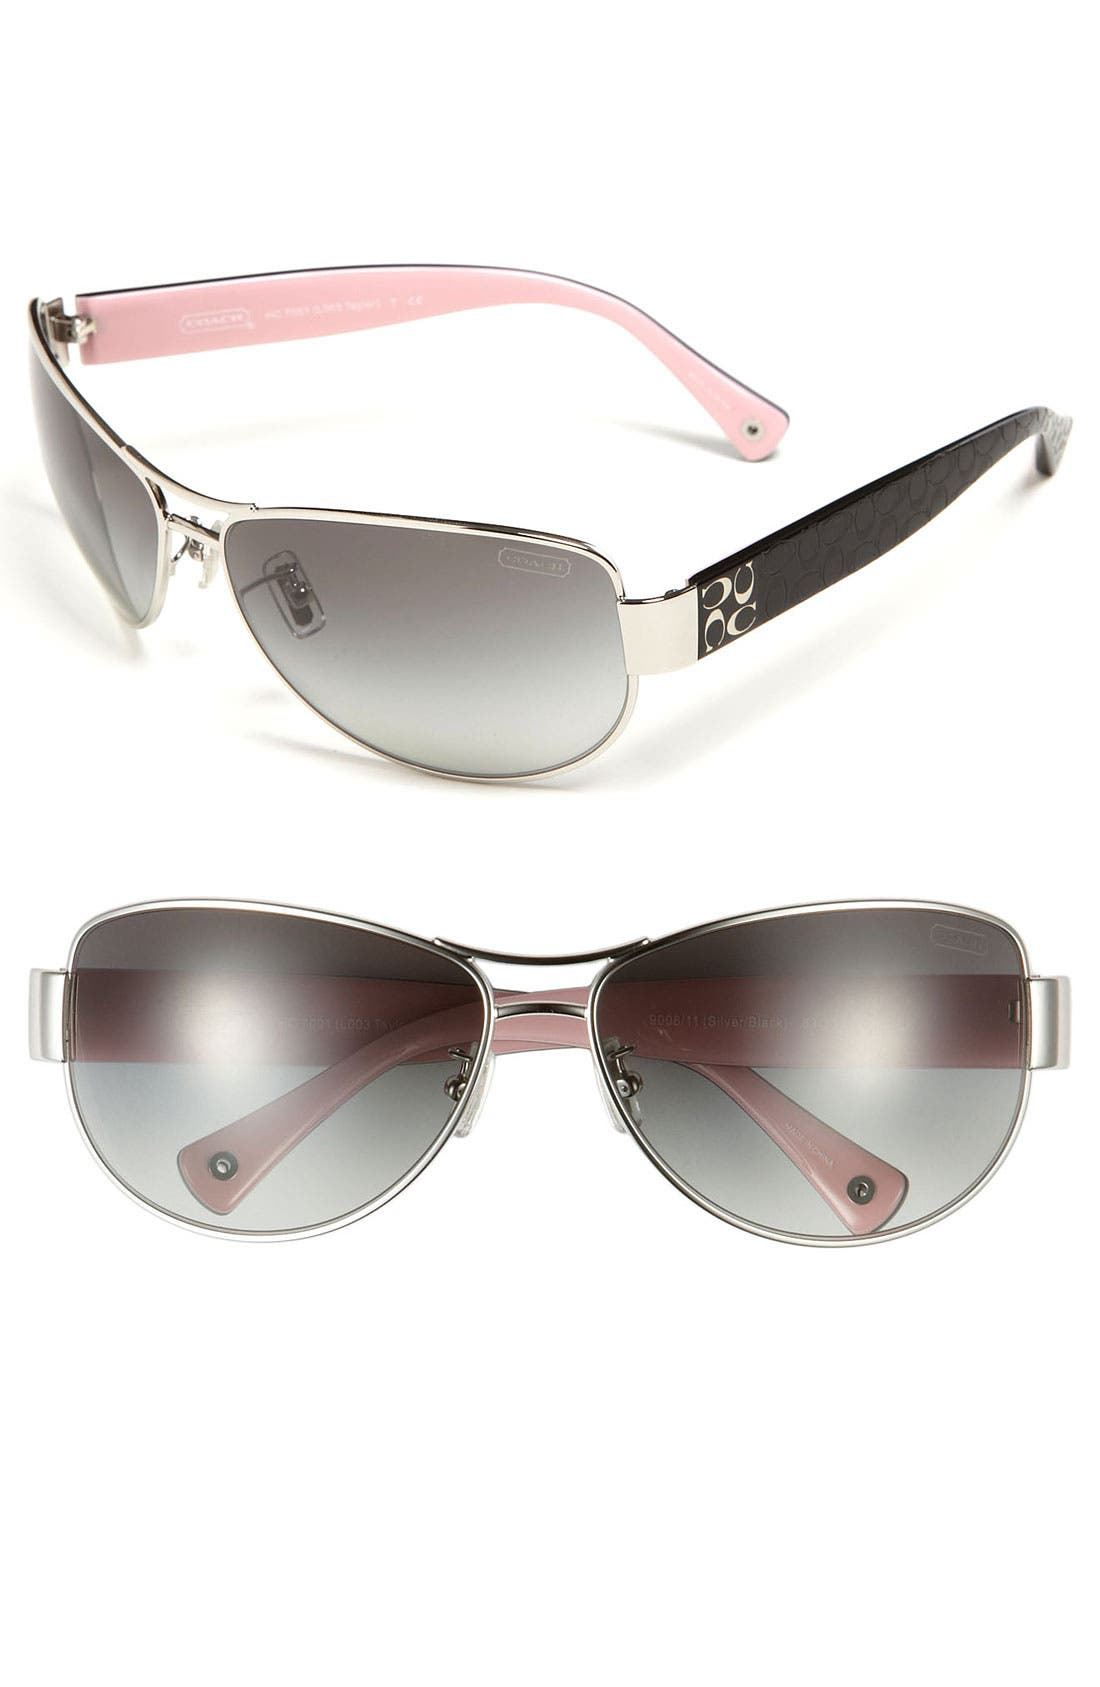 Main Image - COACH 63mm Metal Aviator Sunglasses